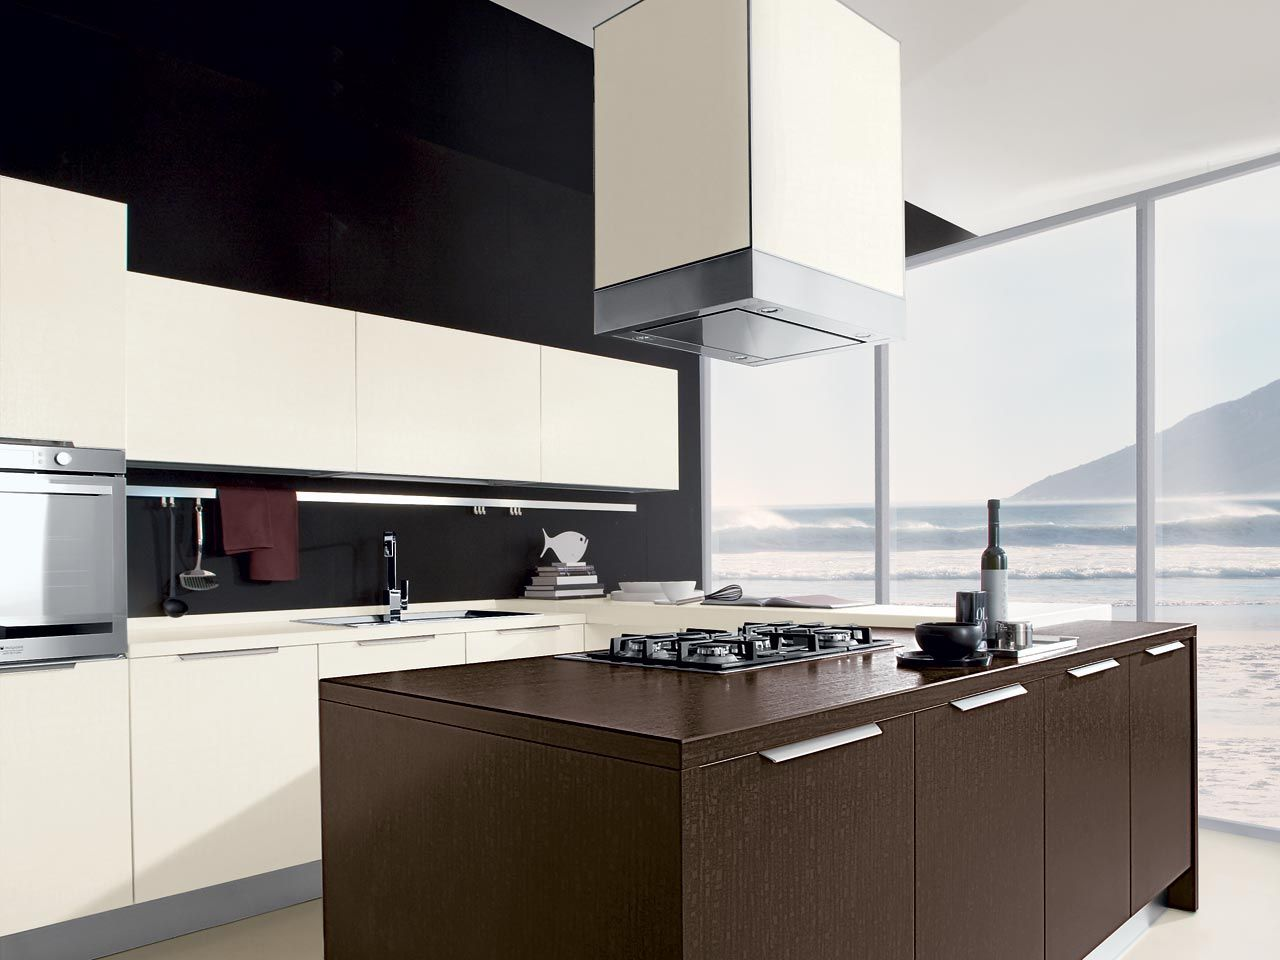 Nilde Gres - Kitchens - Cucine Lube | Kitchen Designs | Pinterest